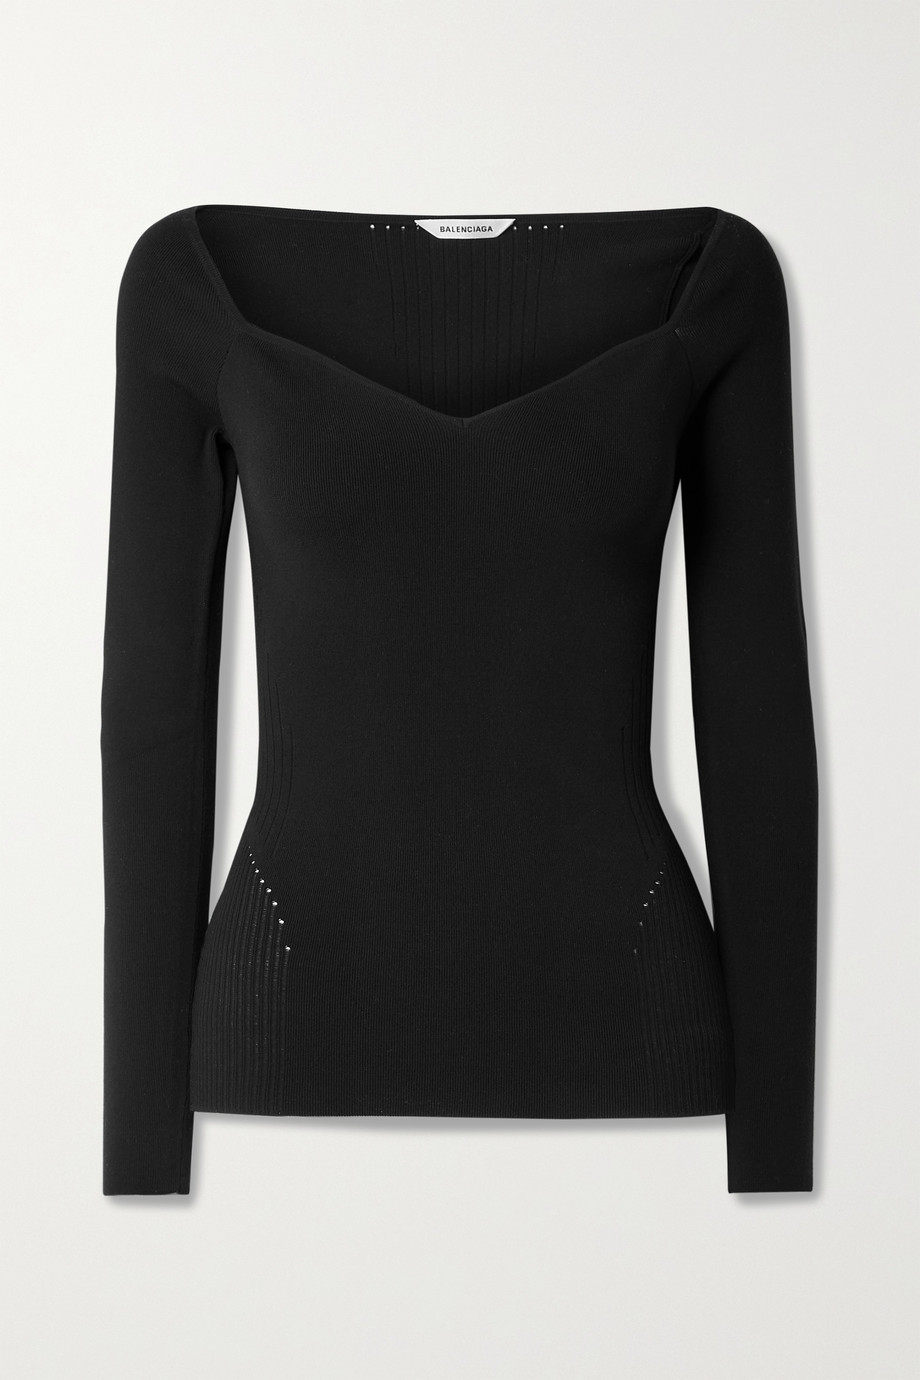 BALENCIAGA Stretch modal-blend jersey top